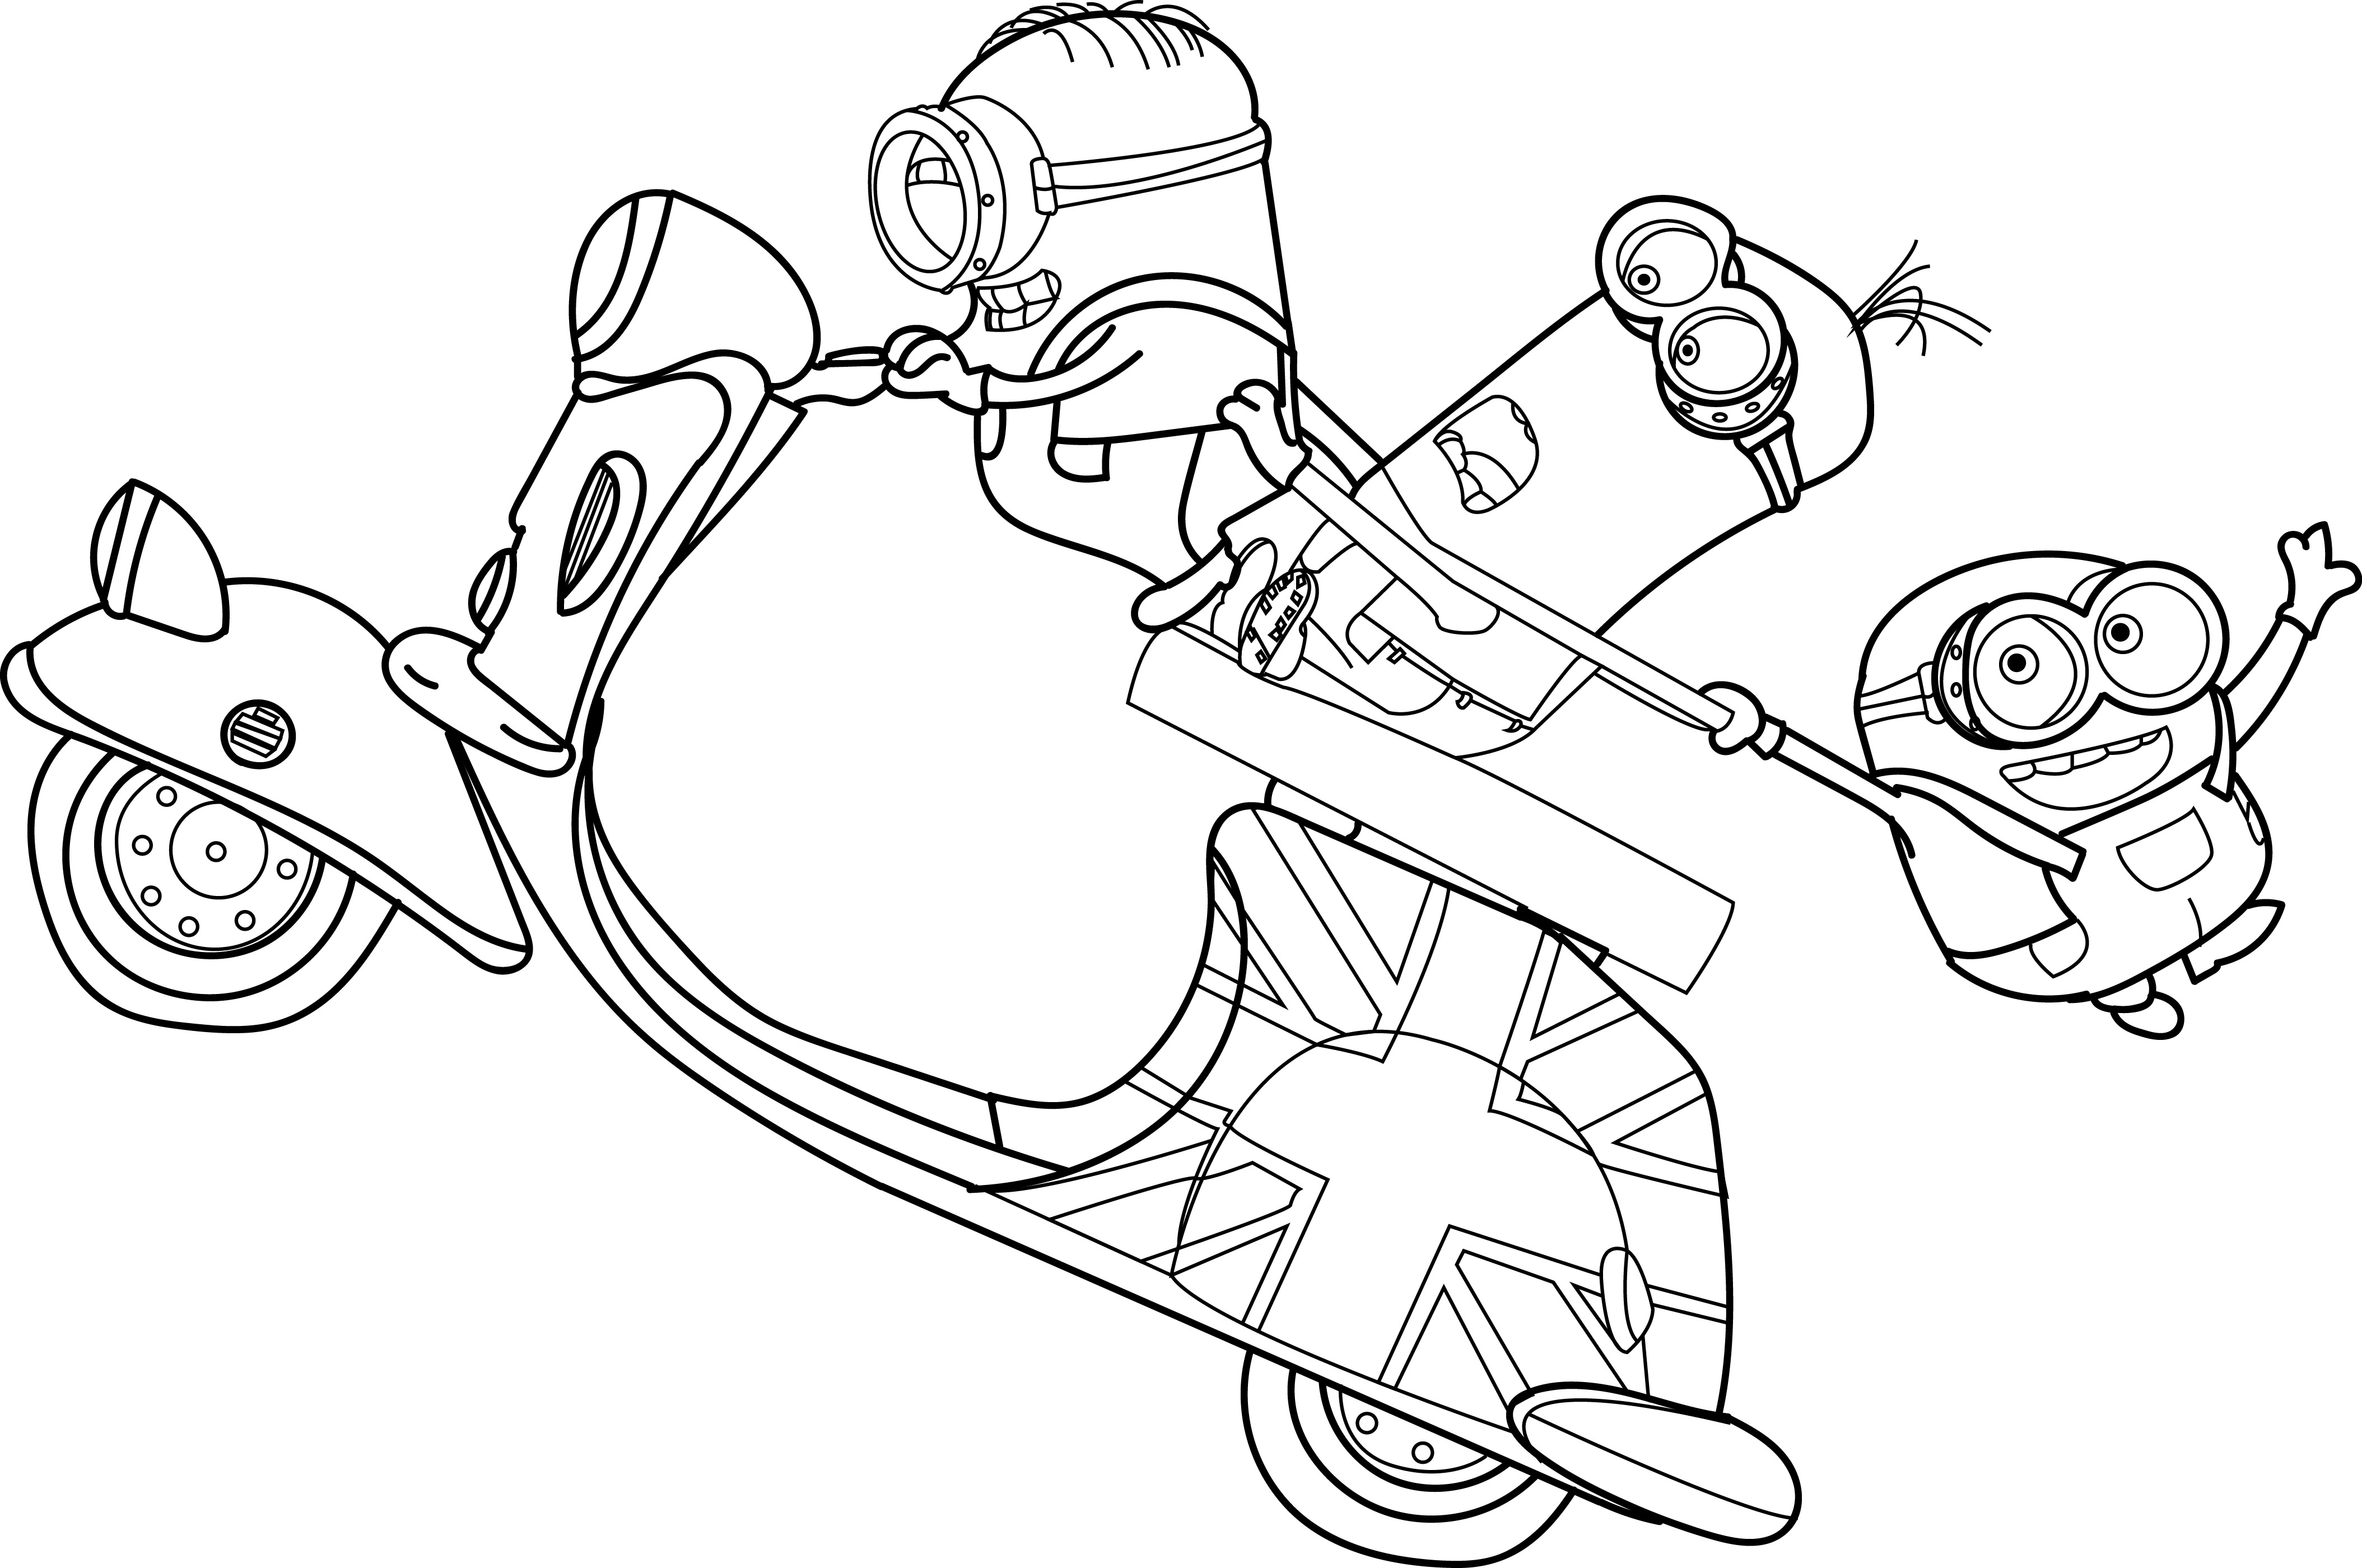 Minion Coloring Pages To Print Out At Getdrawings Com Free For